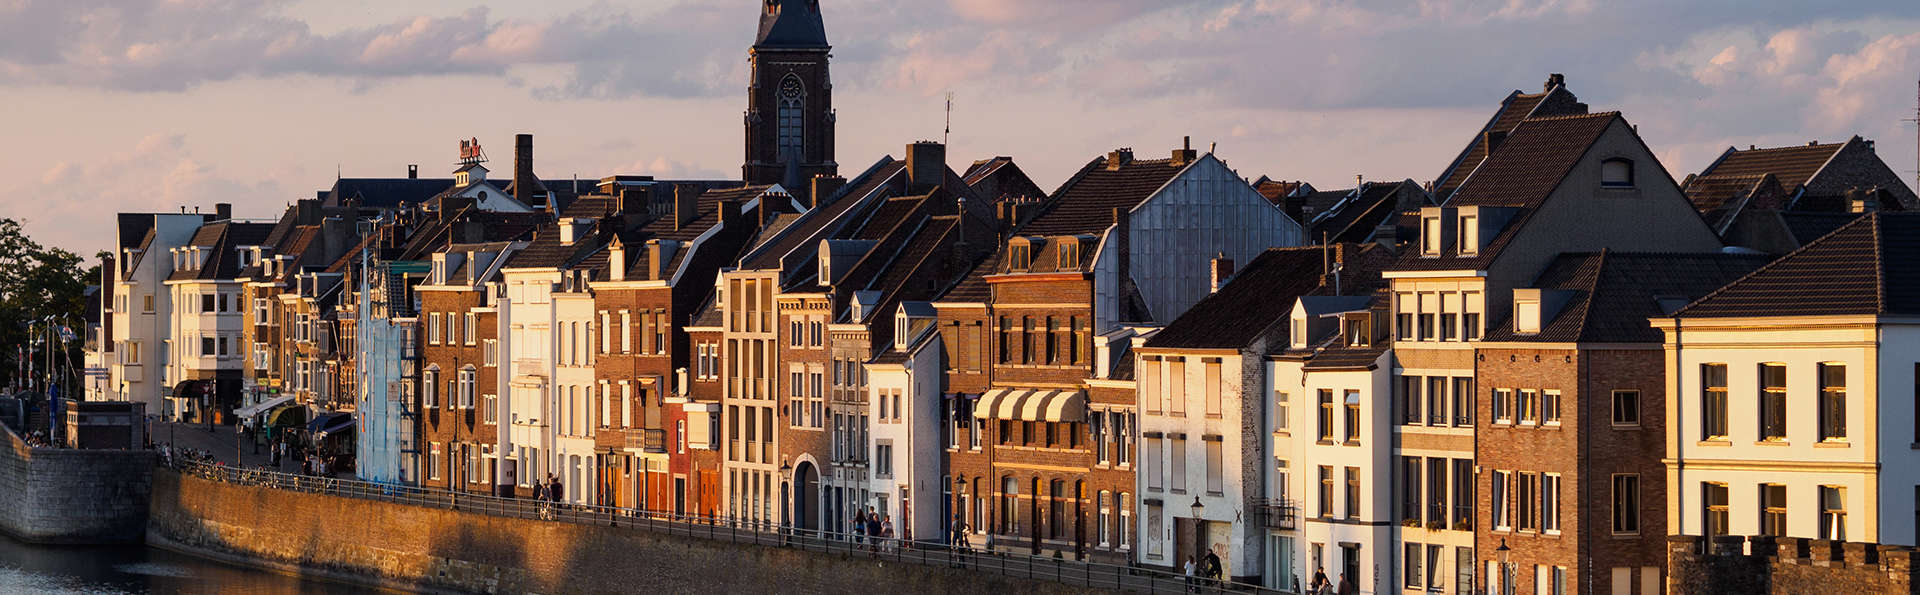 Mabi City Centre - EDIT_MAASTRICHT20.jpg